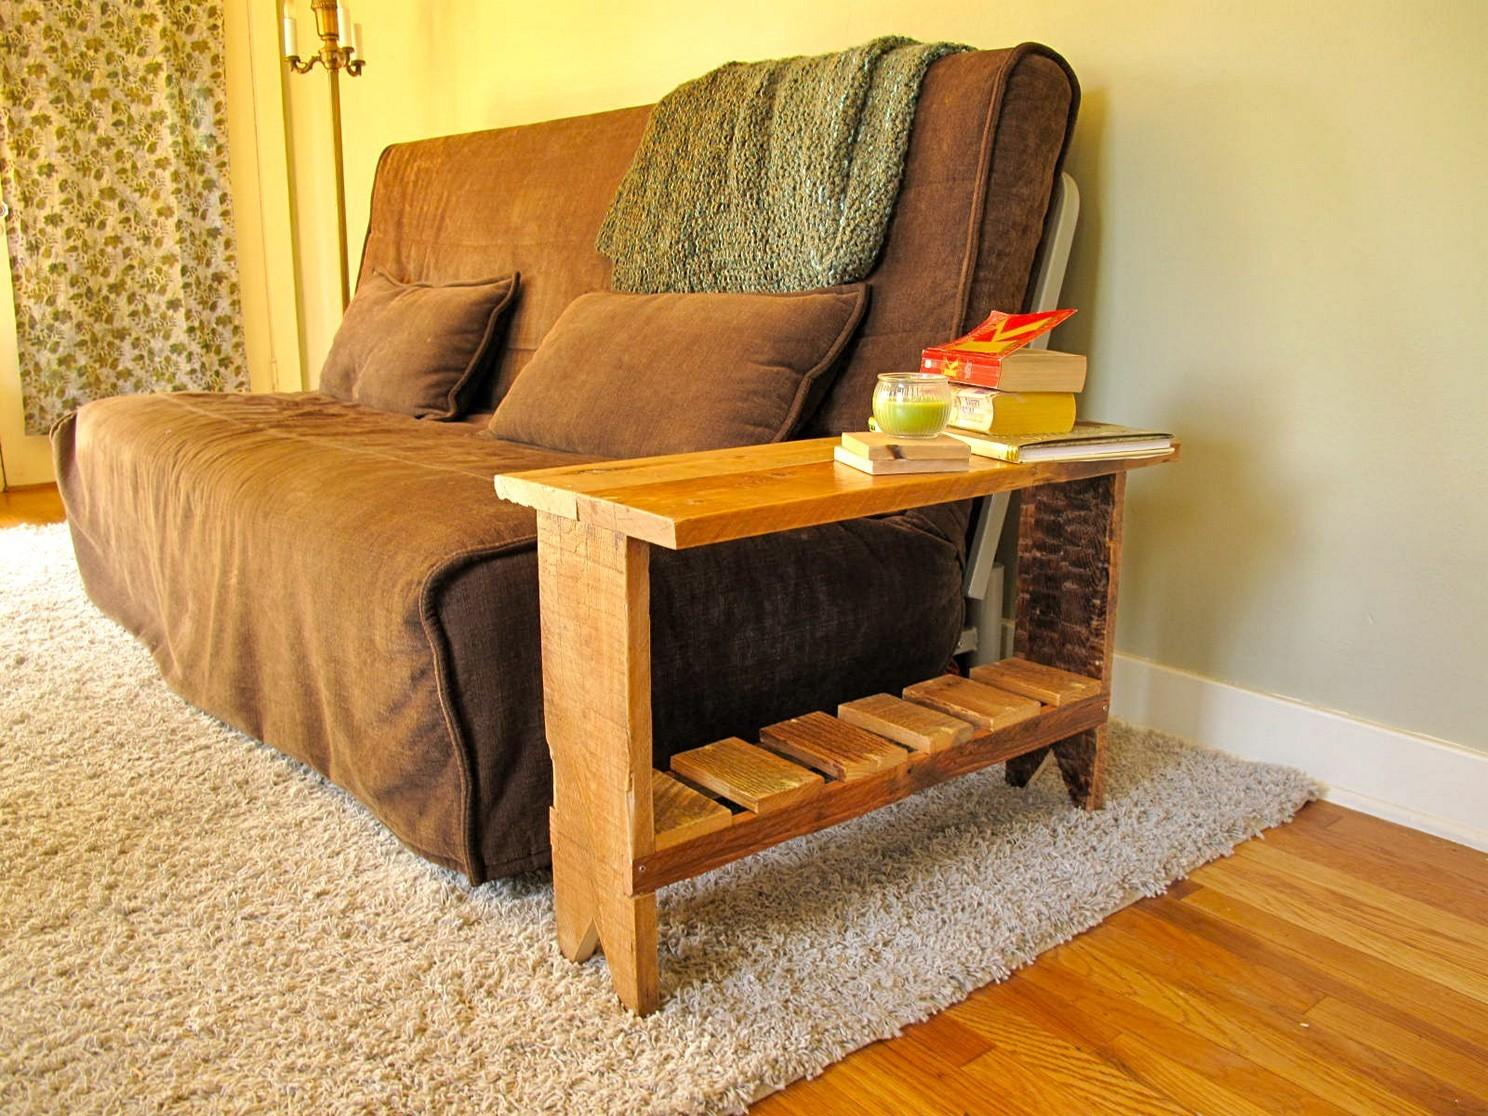 Diy Pallet Furniture Ideas Improve Your Cozy Home